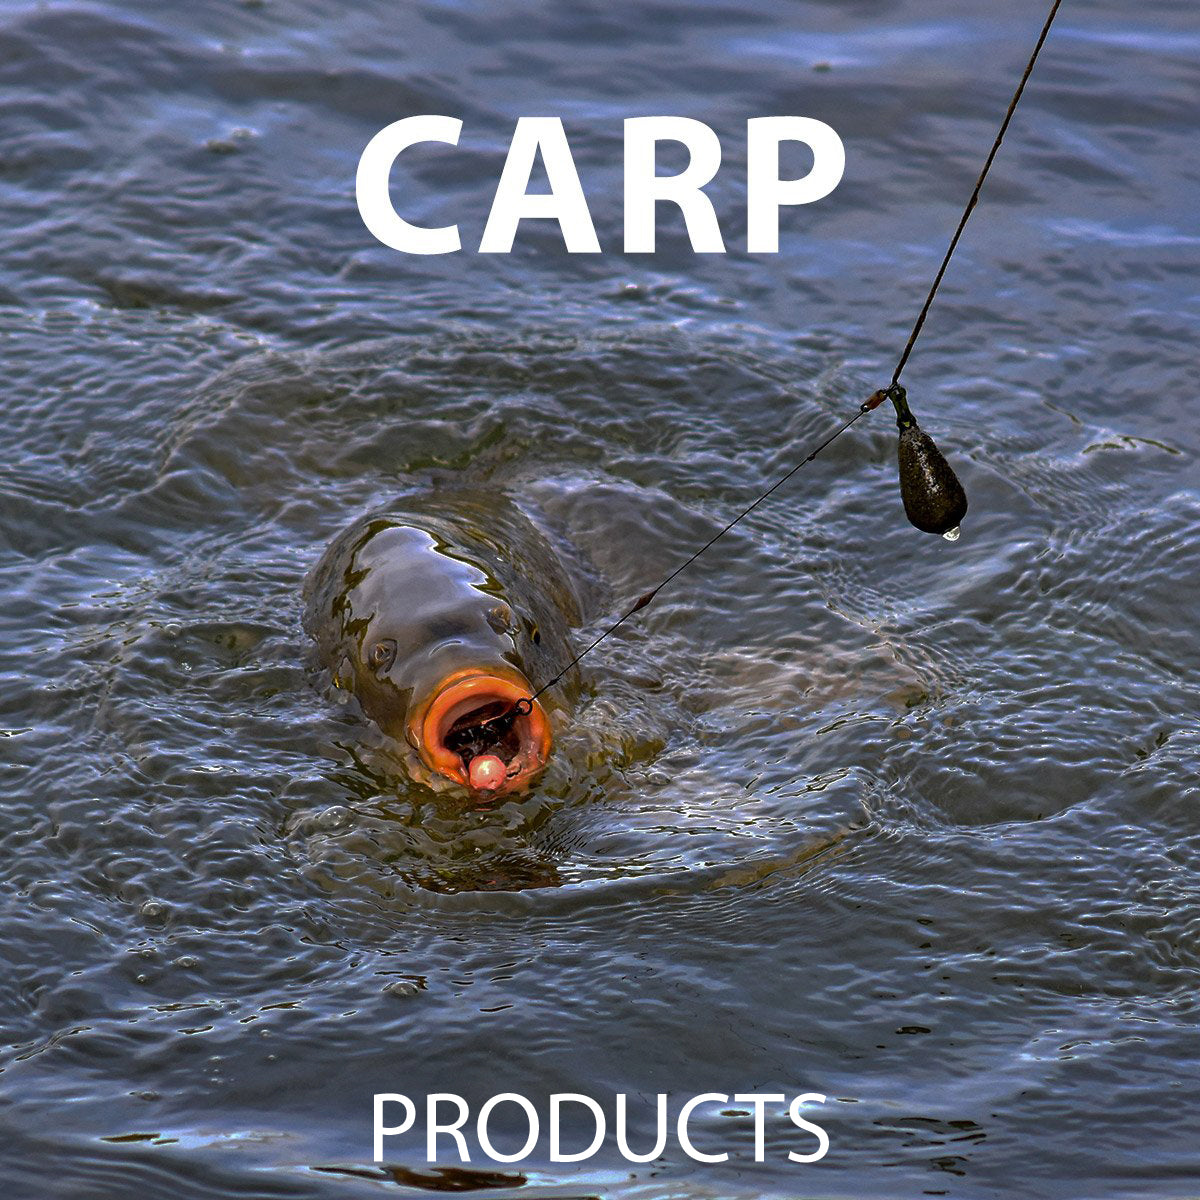 Carp products